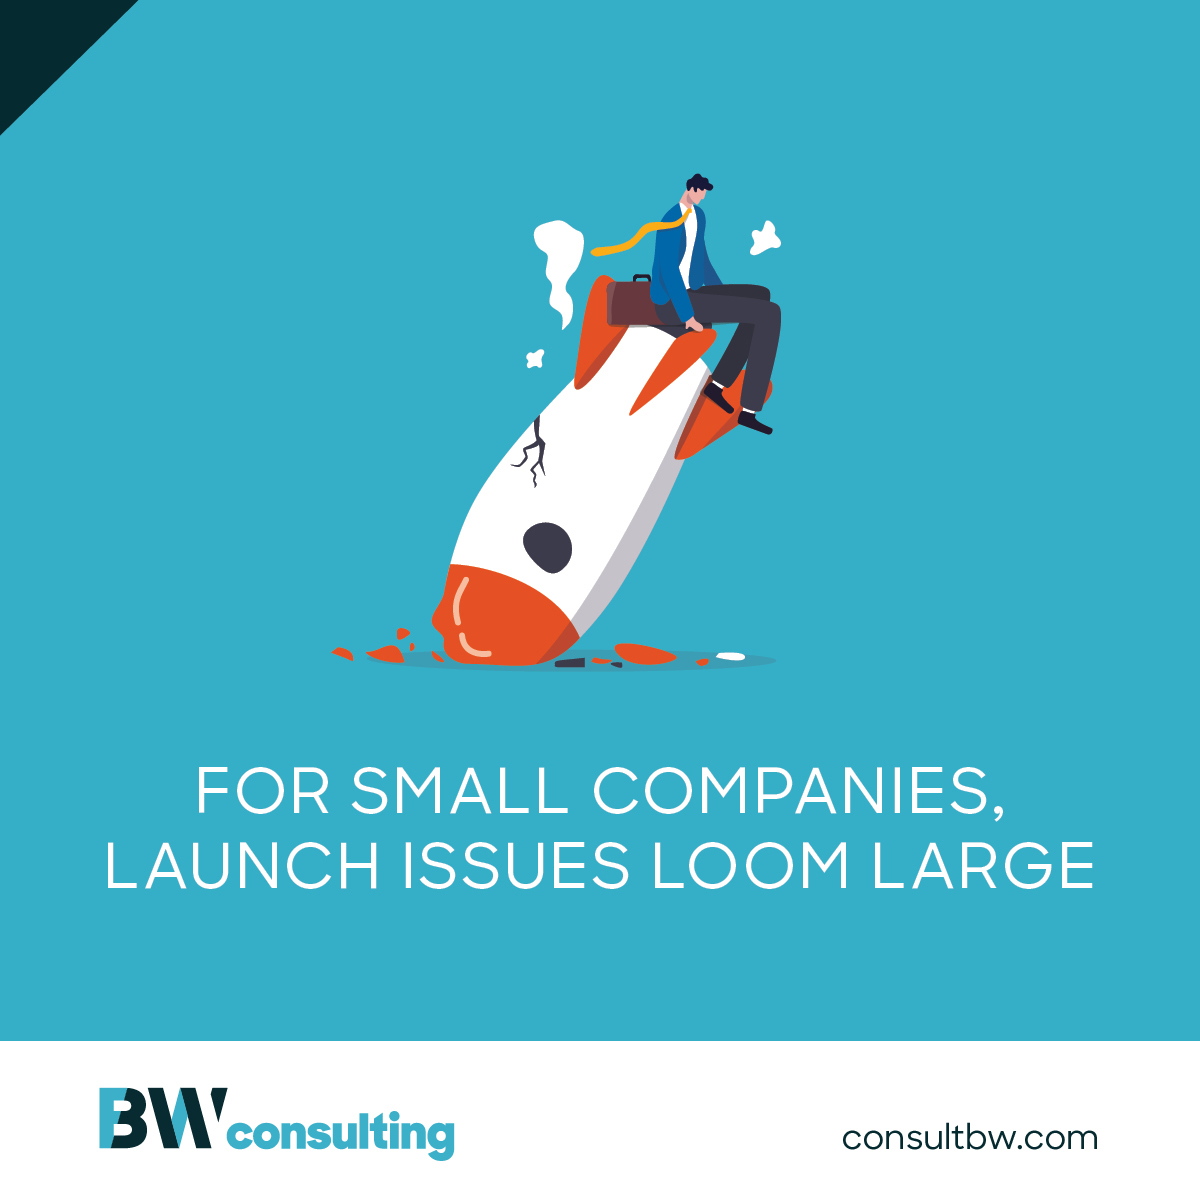 For small companies, launch issues loom large